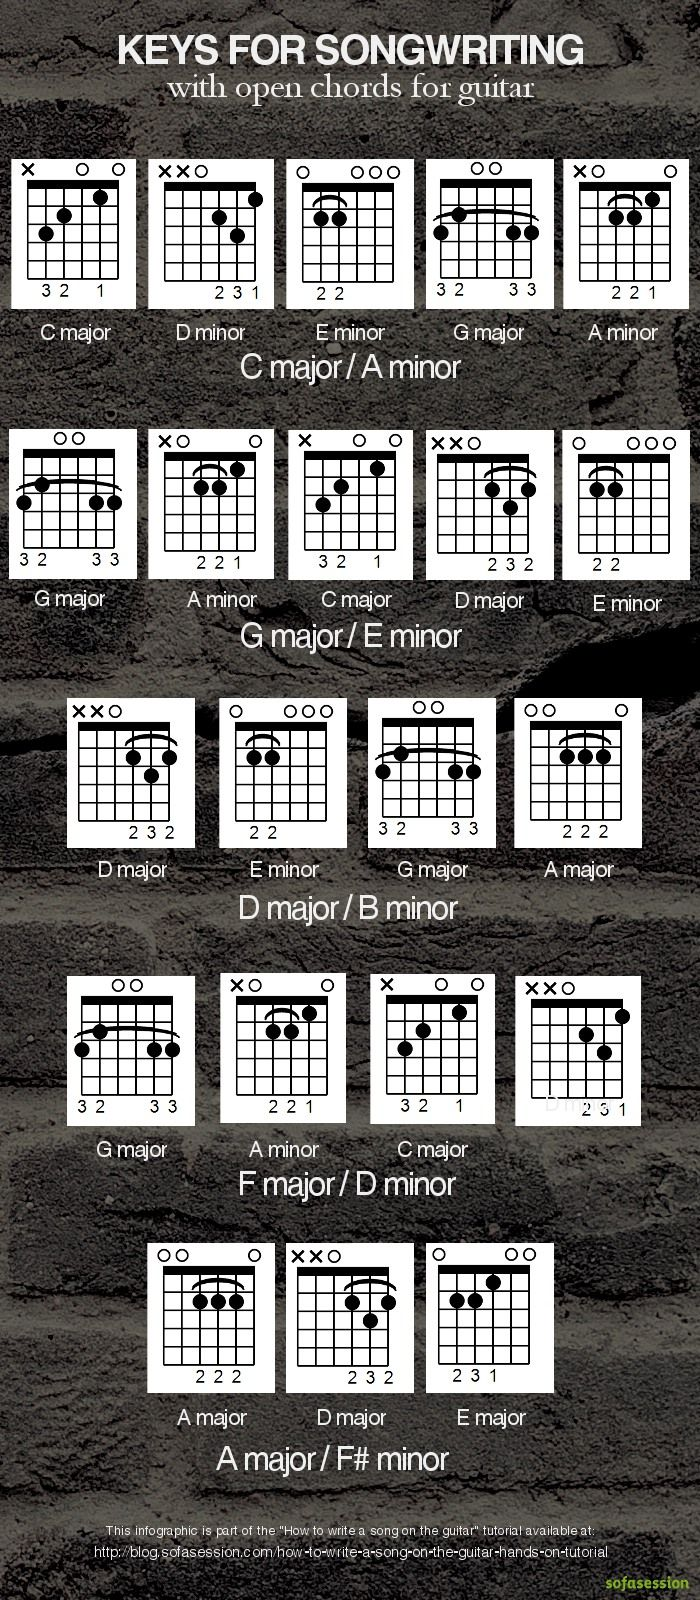 Keys With Open Chords For Writing A Song On The Guitar Buu